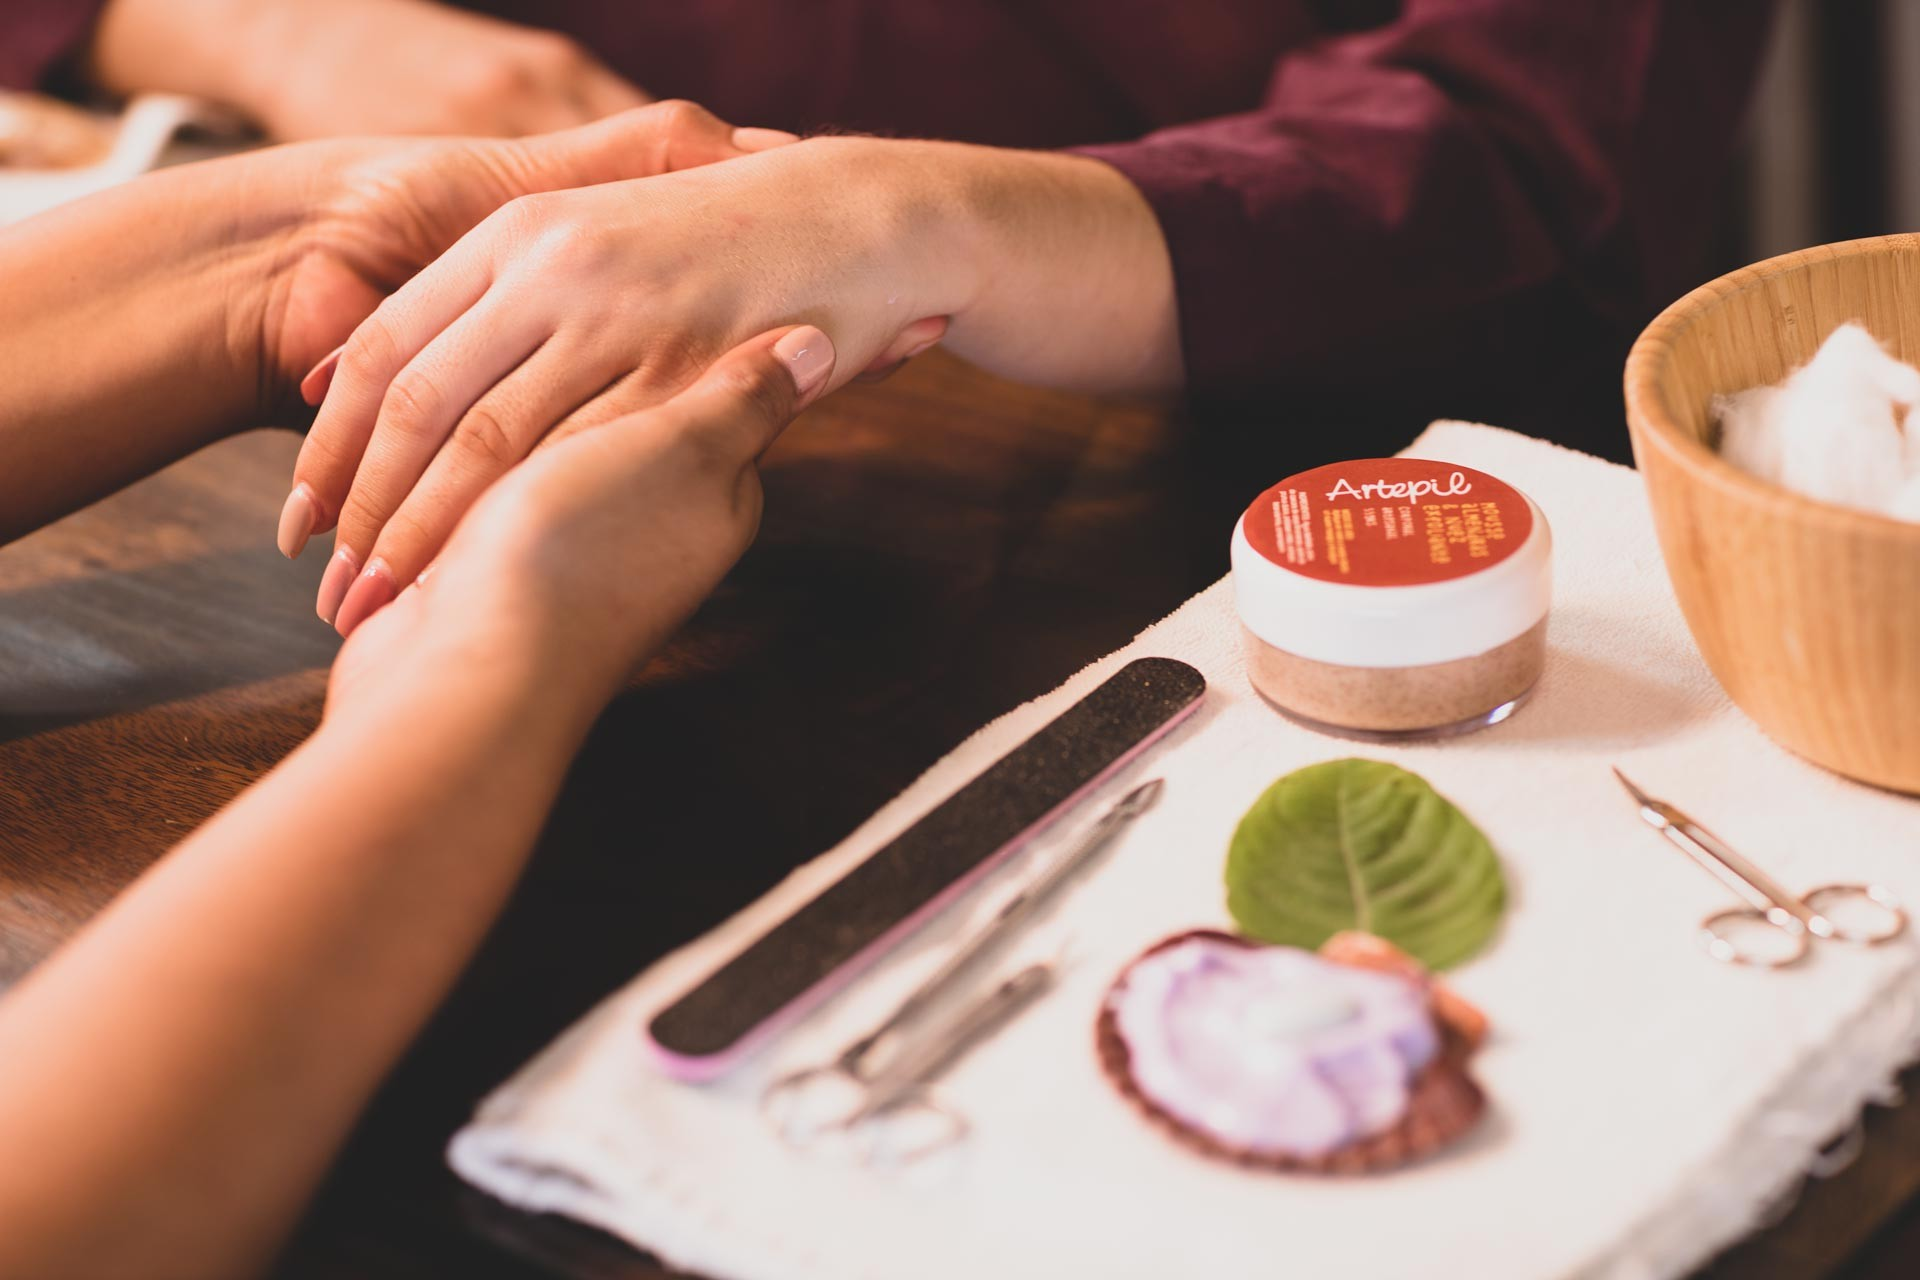 Hands applying manicure services with professional products